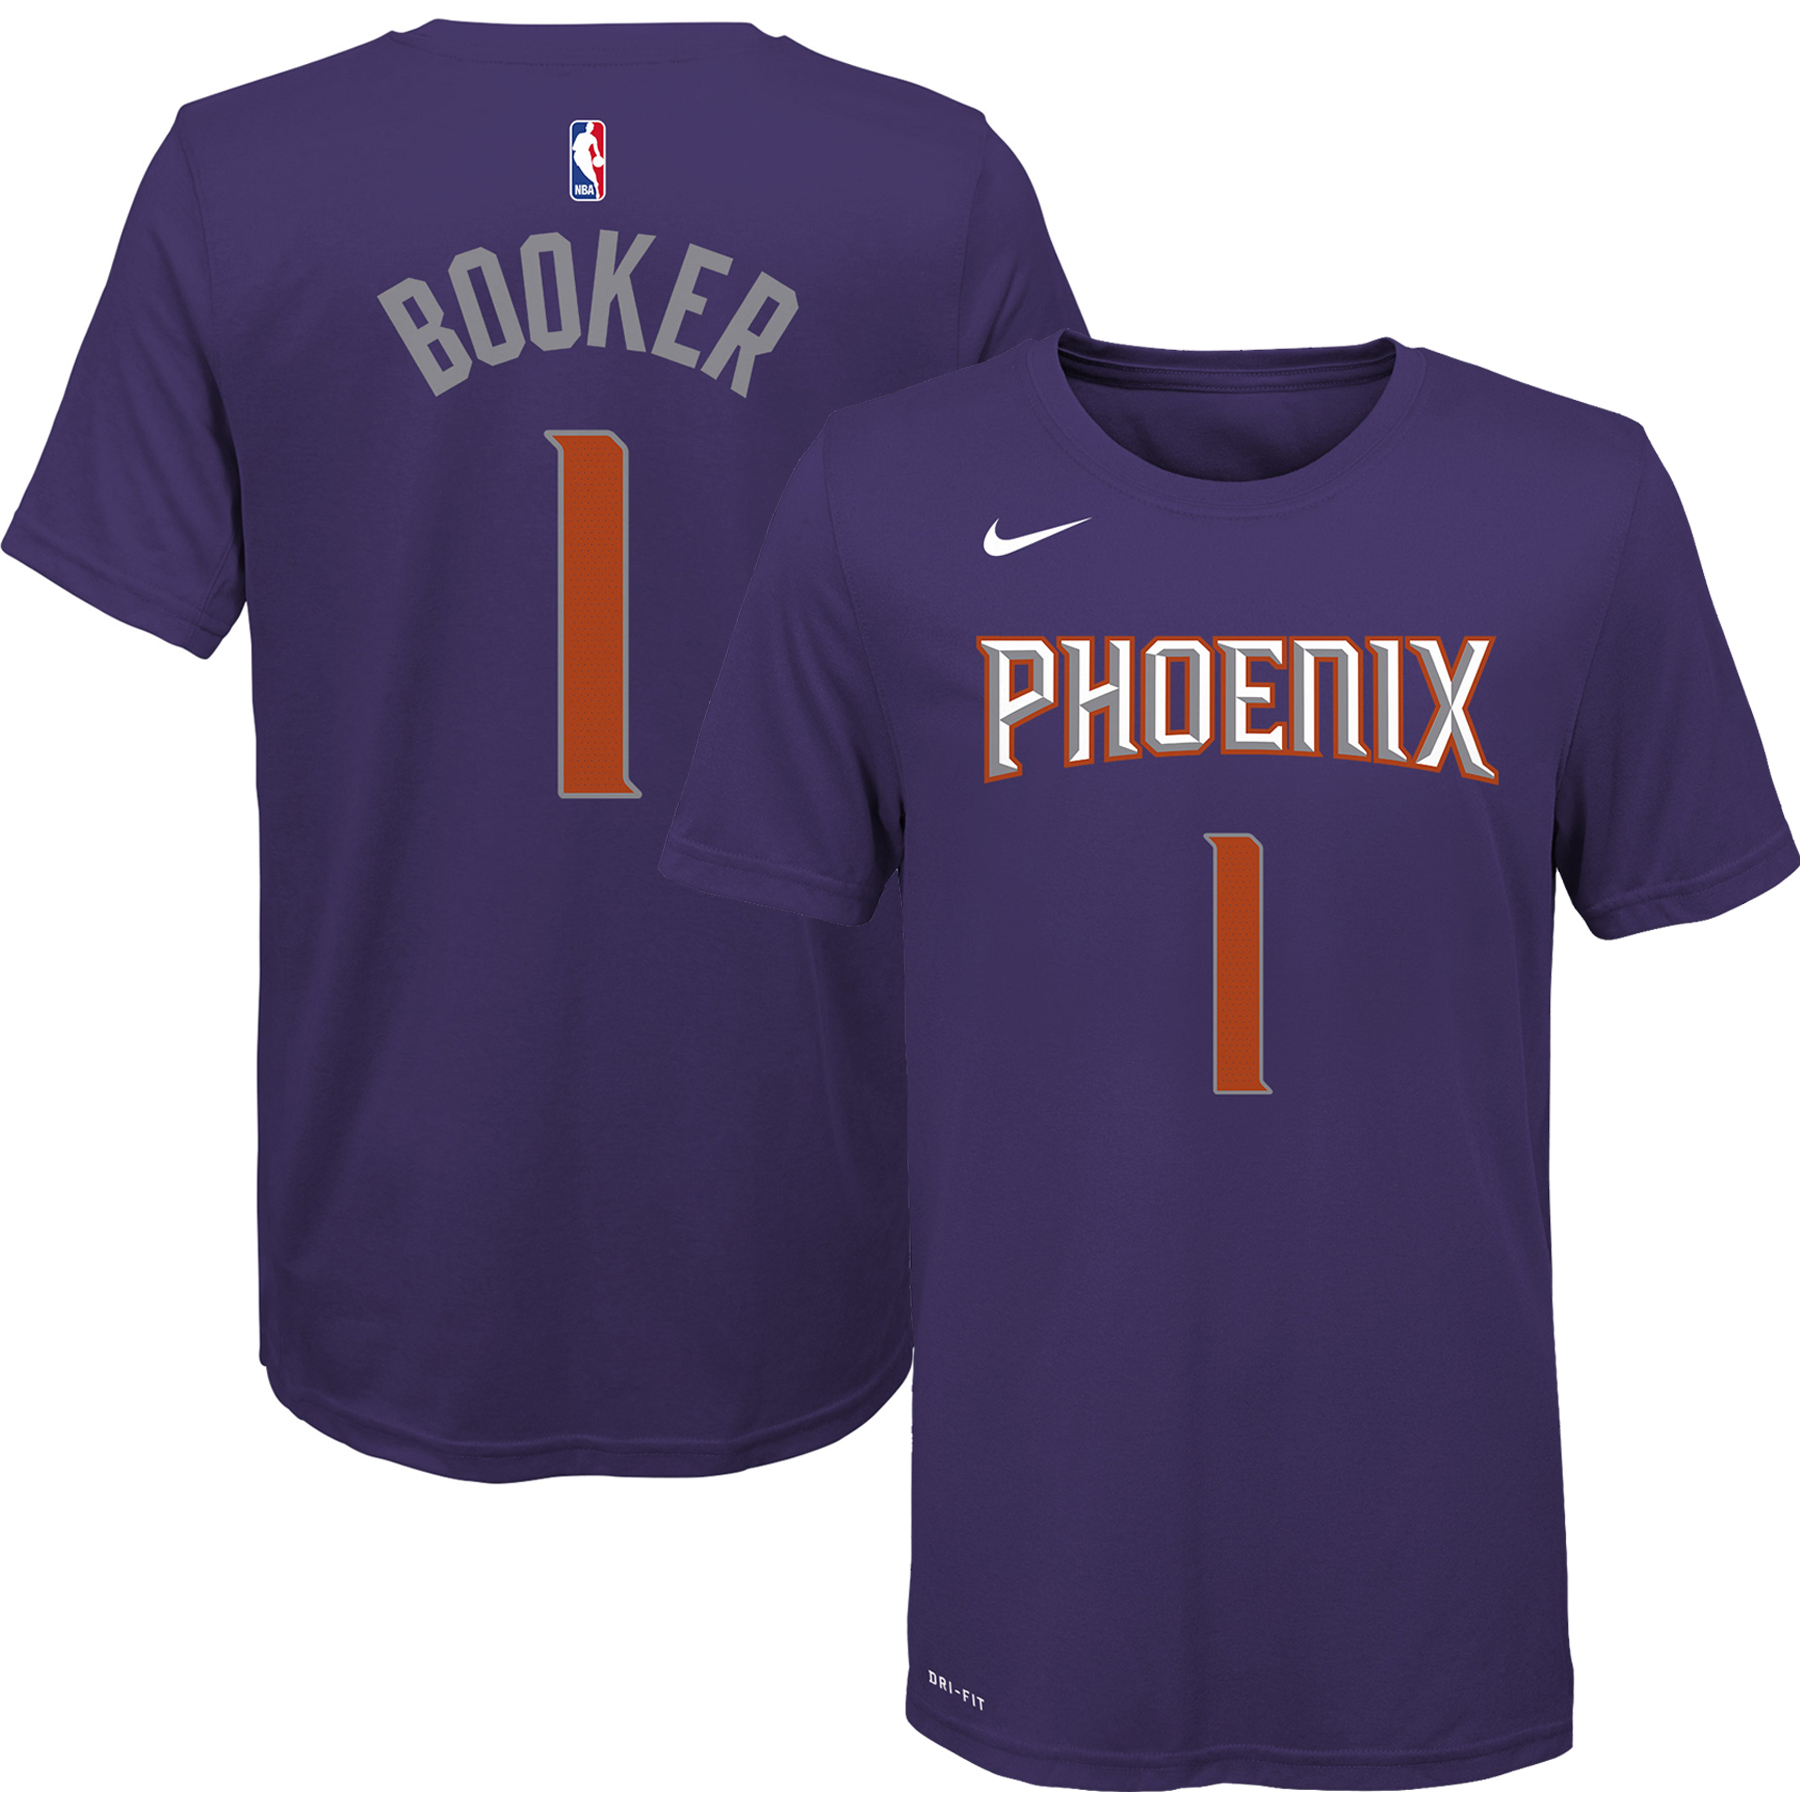 Devin Booker Phoenix Suns Nike Youth Name & Number T-Shirt - Purple